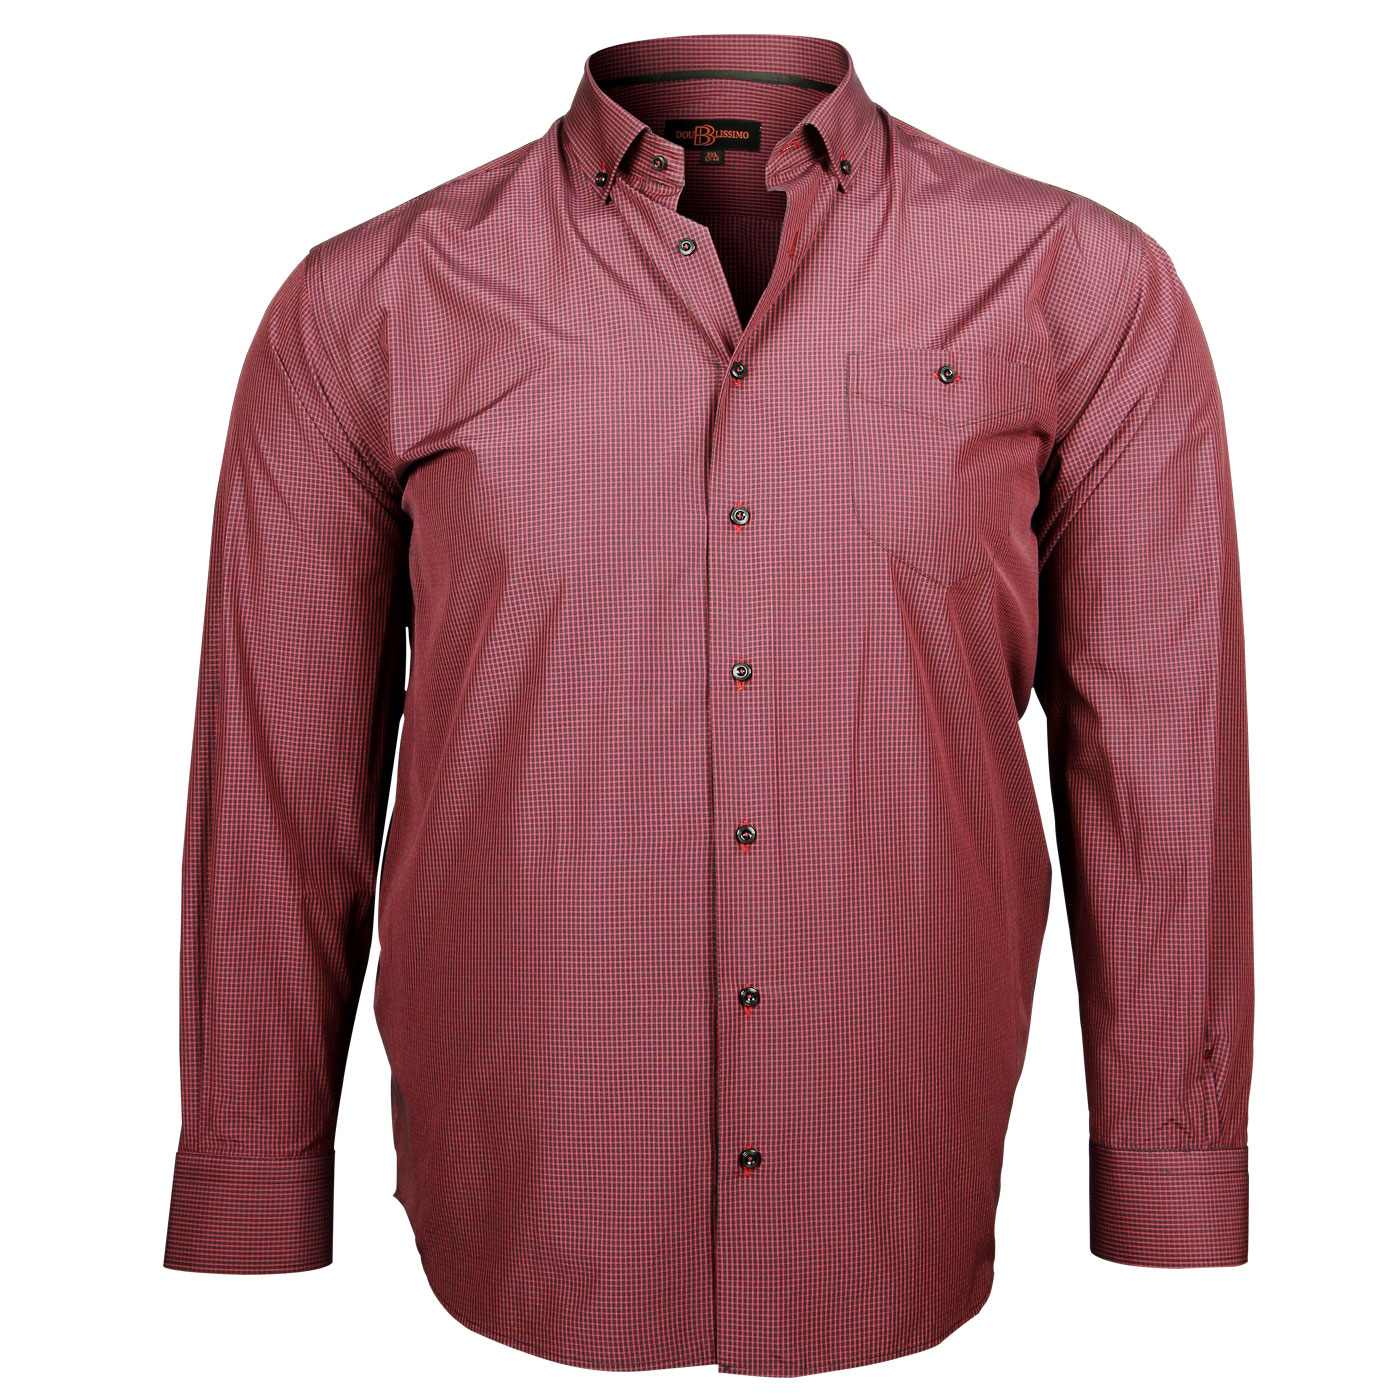 Chemise Grande Taille Pas Cher Vente Direct Fabricant